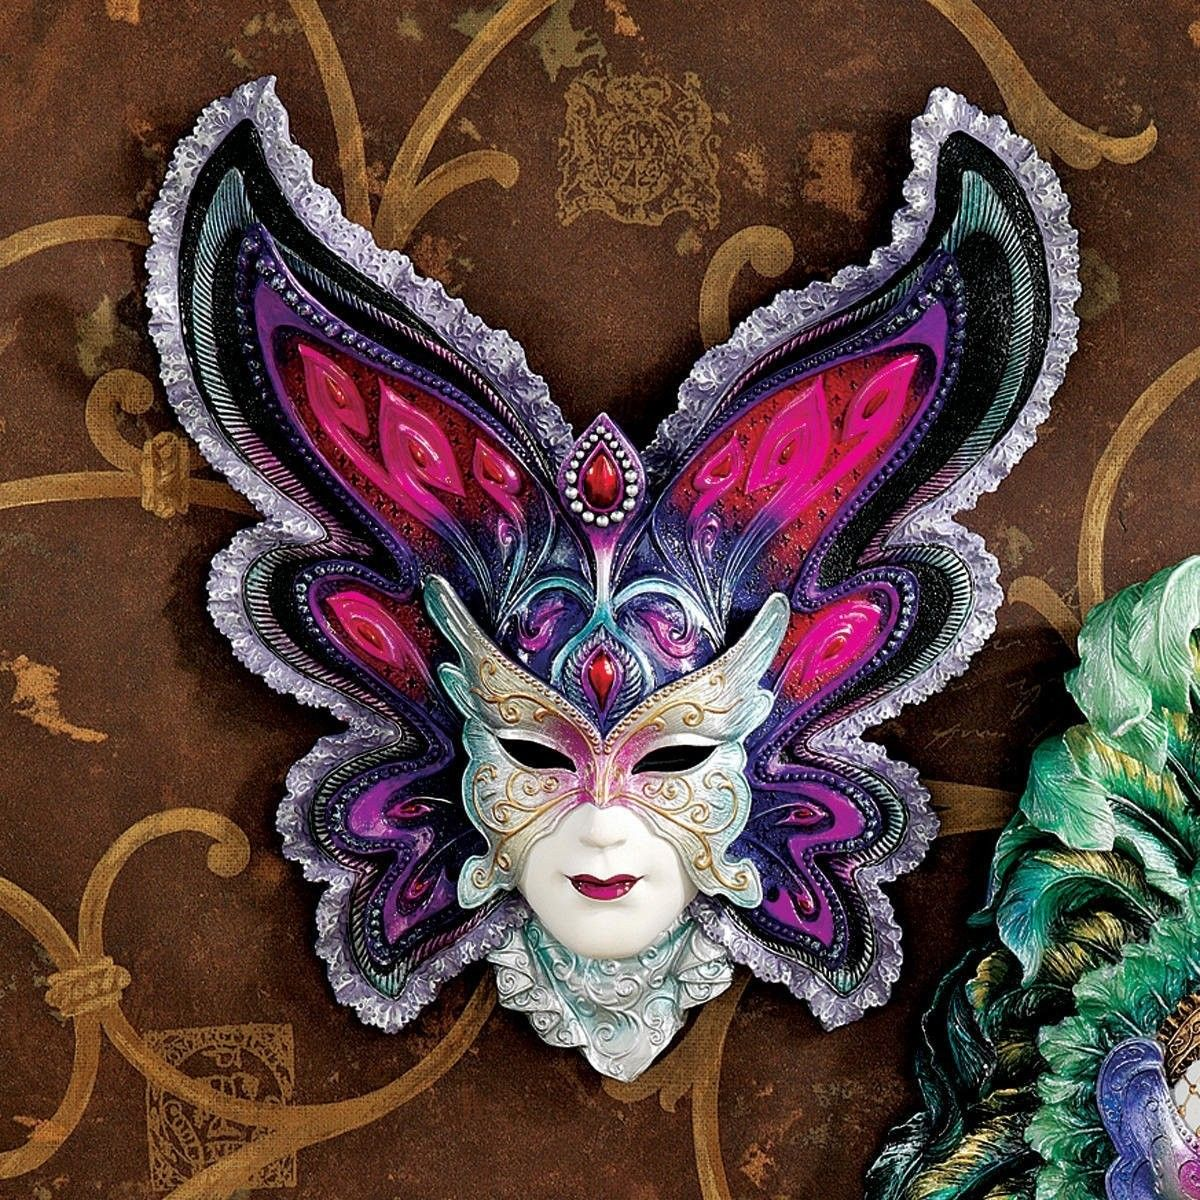 Decor mardi gras decorations with maidens of mardi butterfly and decor mardi gras decorations with maidens of mardi butterfly and mask sculpture and brown wall decor amipublicfo Images